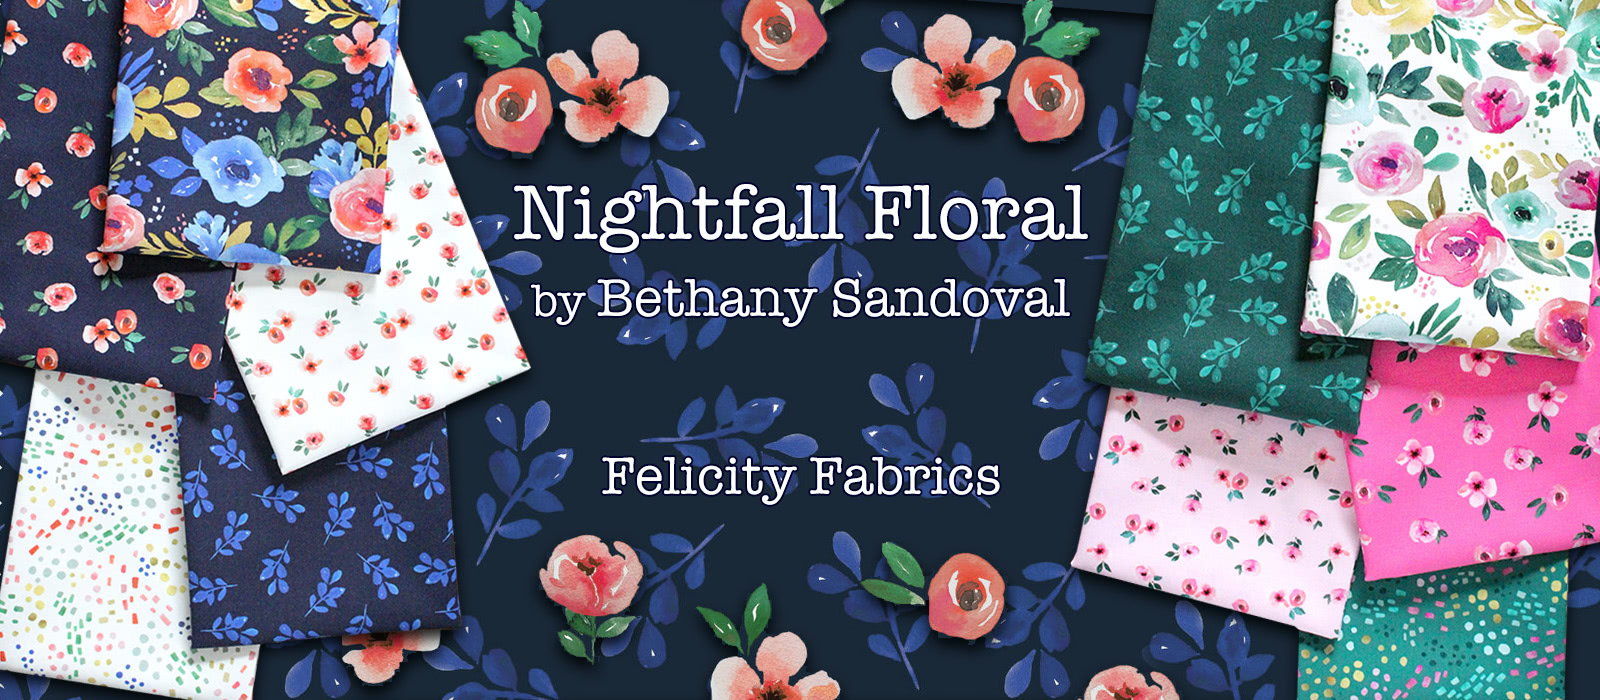 Felicity Fabrics Nightfall Floral Collection by Bethany Sandoval